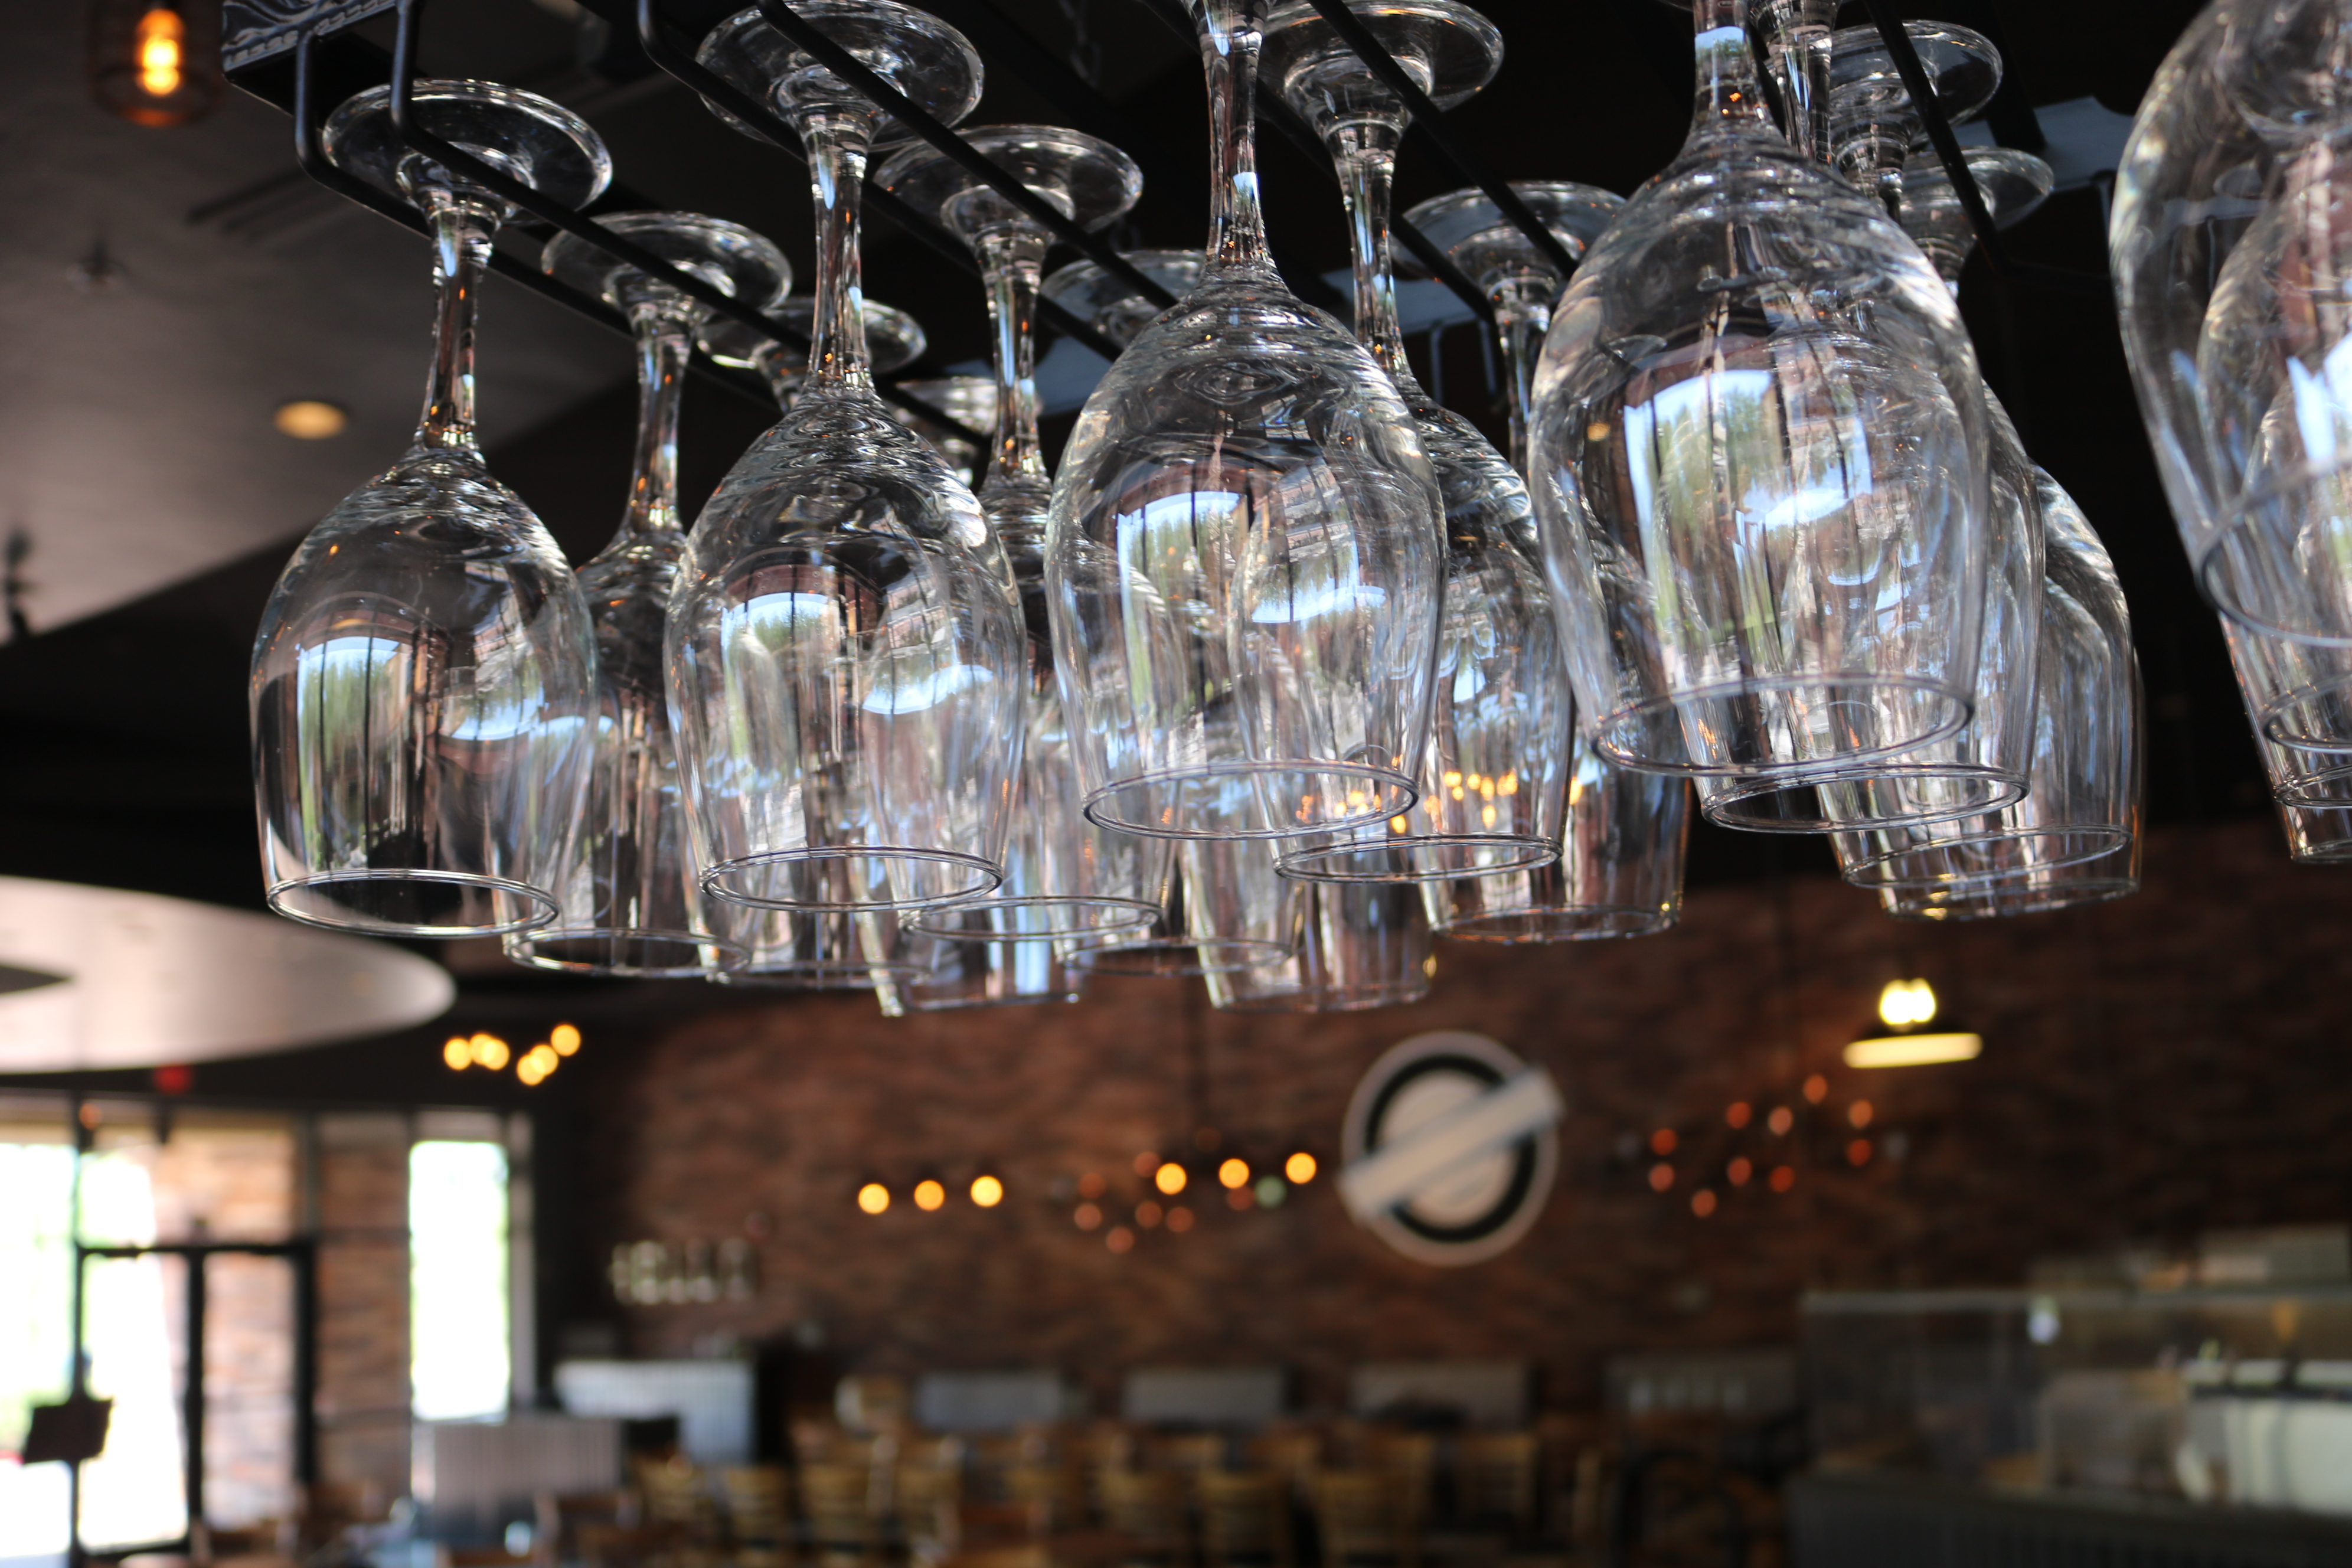 Hanging Mosaic of Chablet Glasses